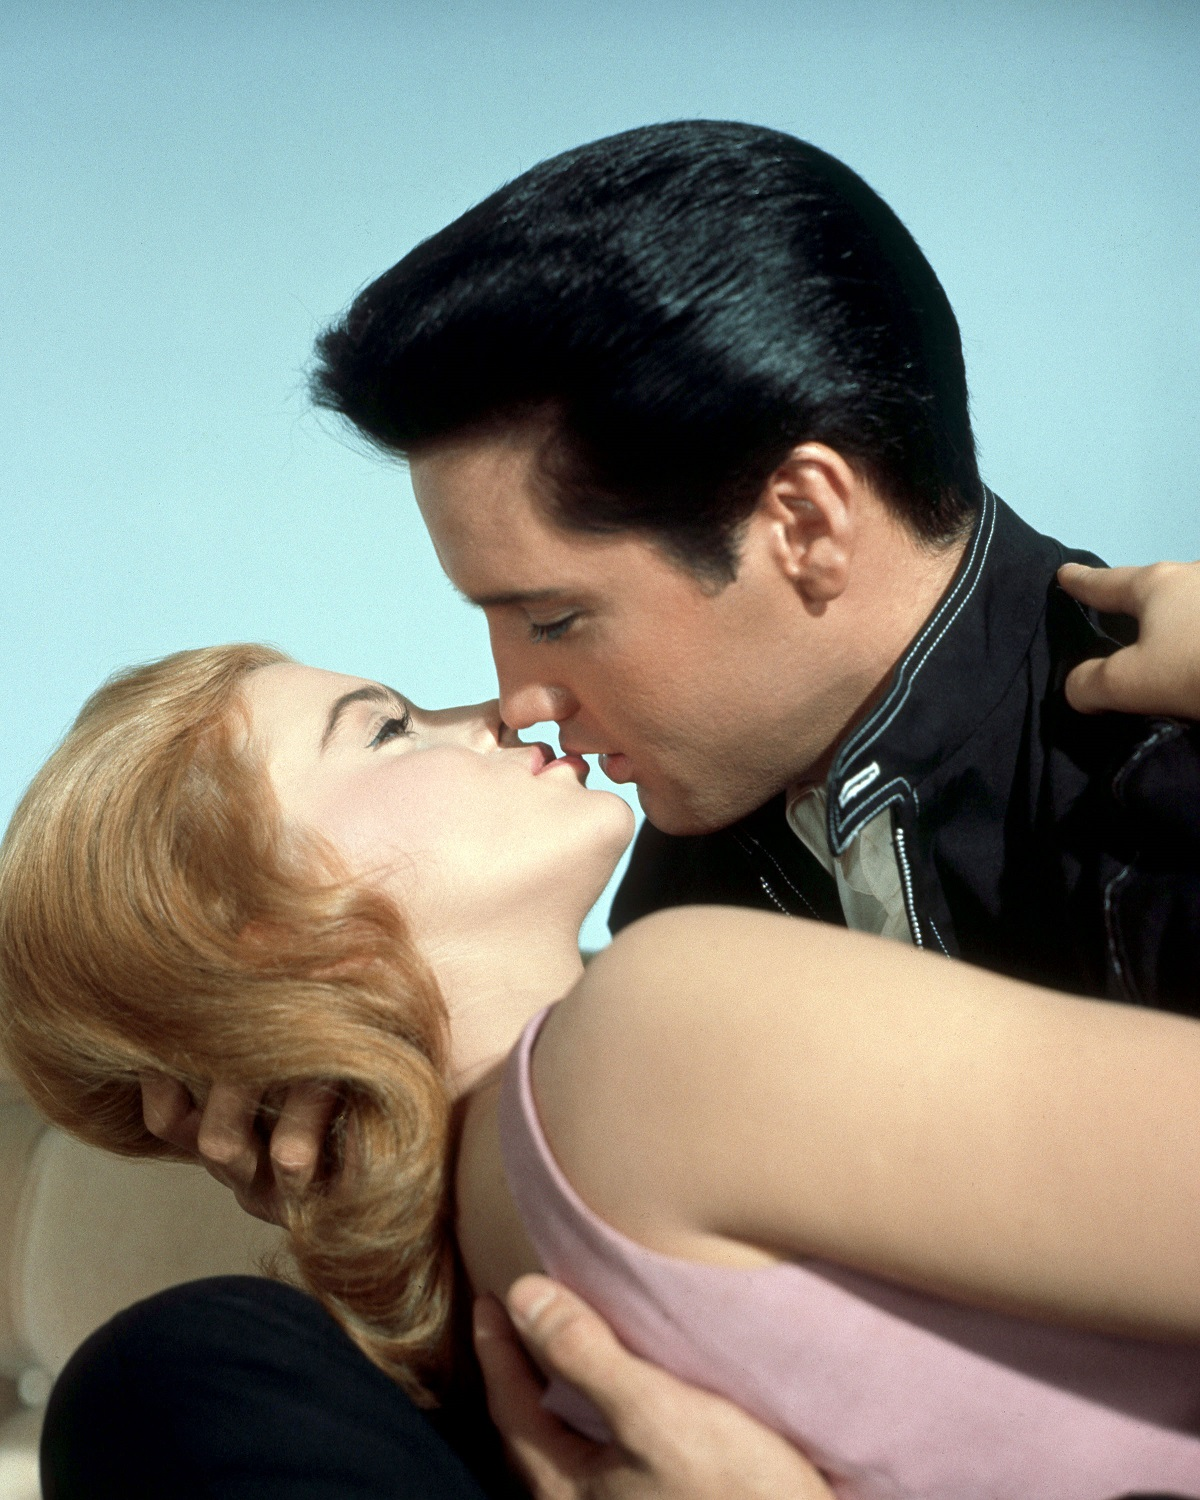 Elvis Presley as Lucky Jackson and Ann-Margret as Rusty Martin in the film 'Viva Las Vegas', 1964 - kissing up-close